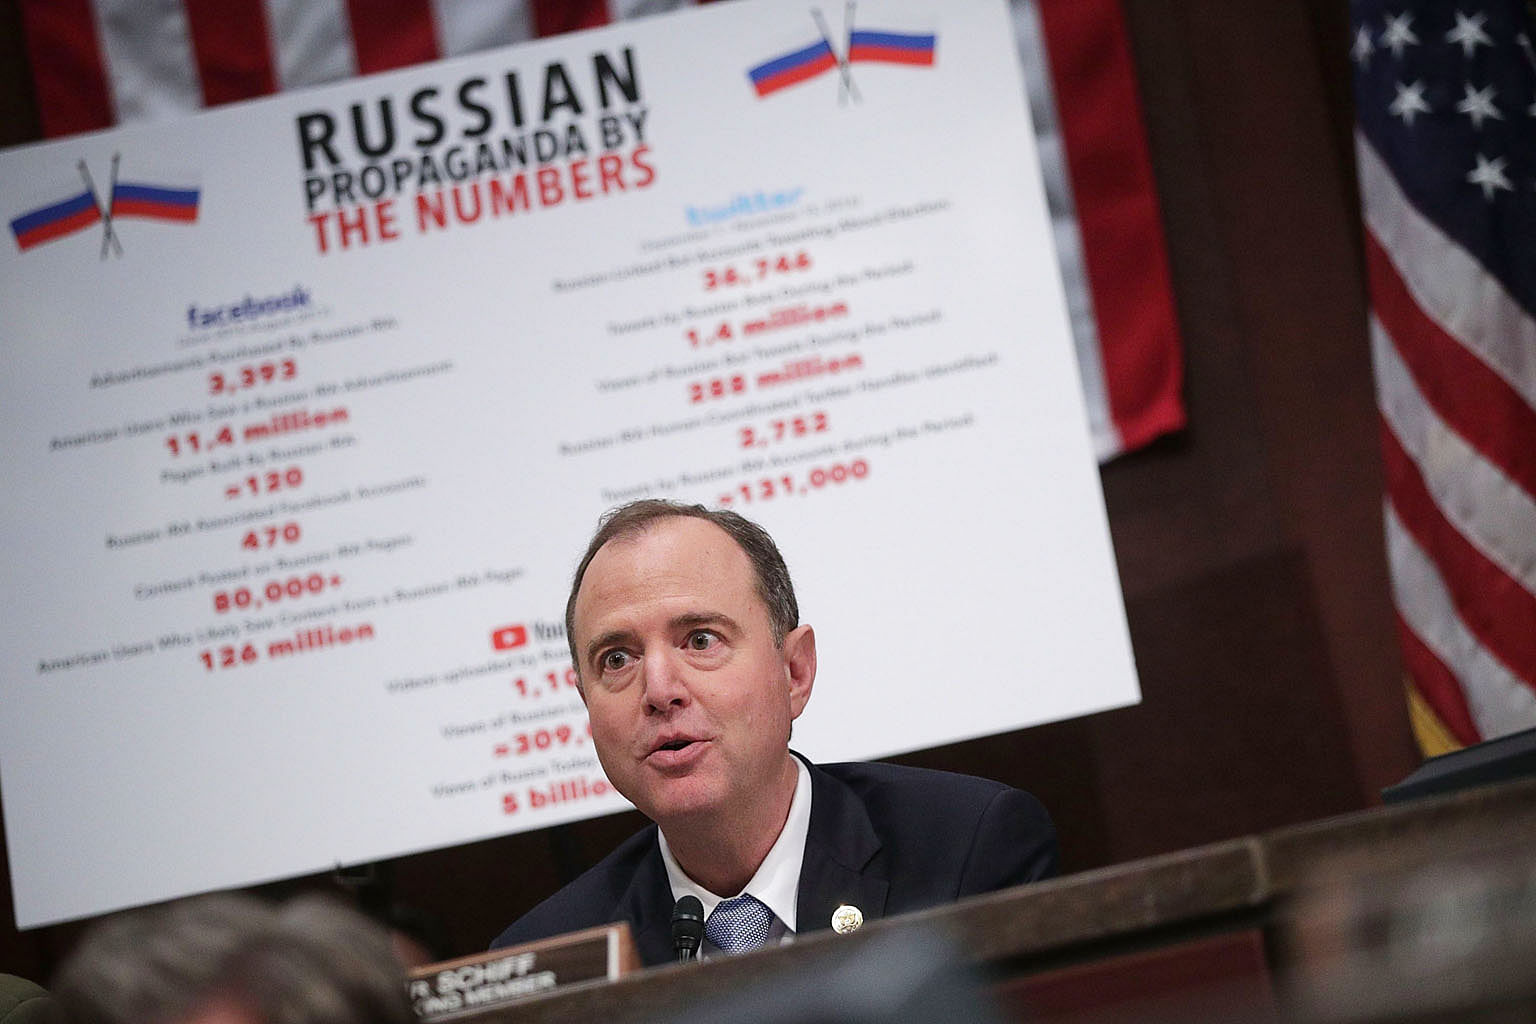 Democratic Representative Adam Schiff at a House Intelligence Committee hearing last November on Russia's use of social media to influence the US election. Alleged Russian involvement in the 2016 US presidential election was an example cited in the S